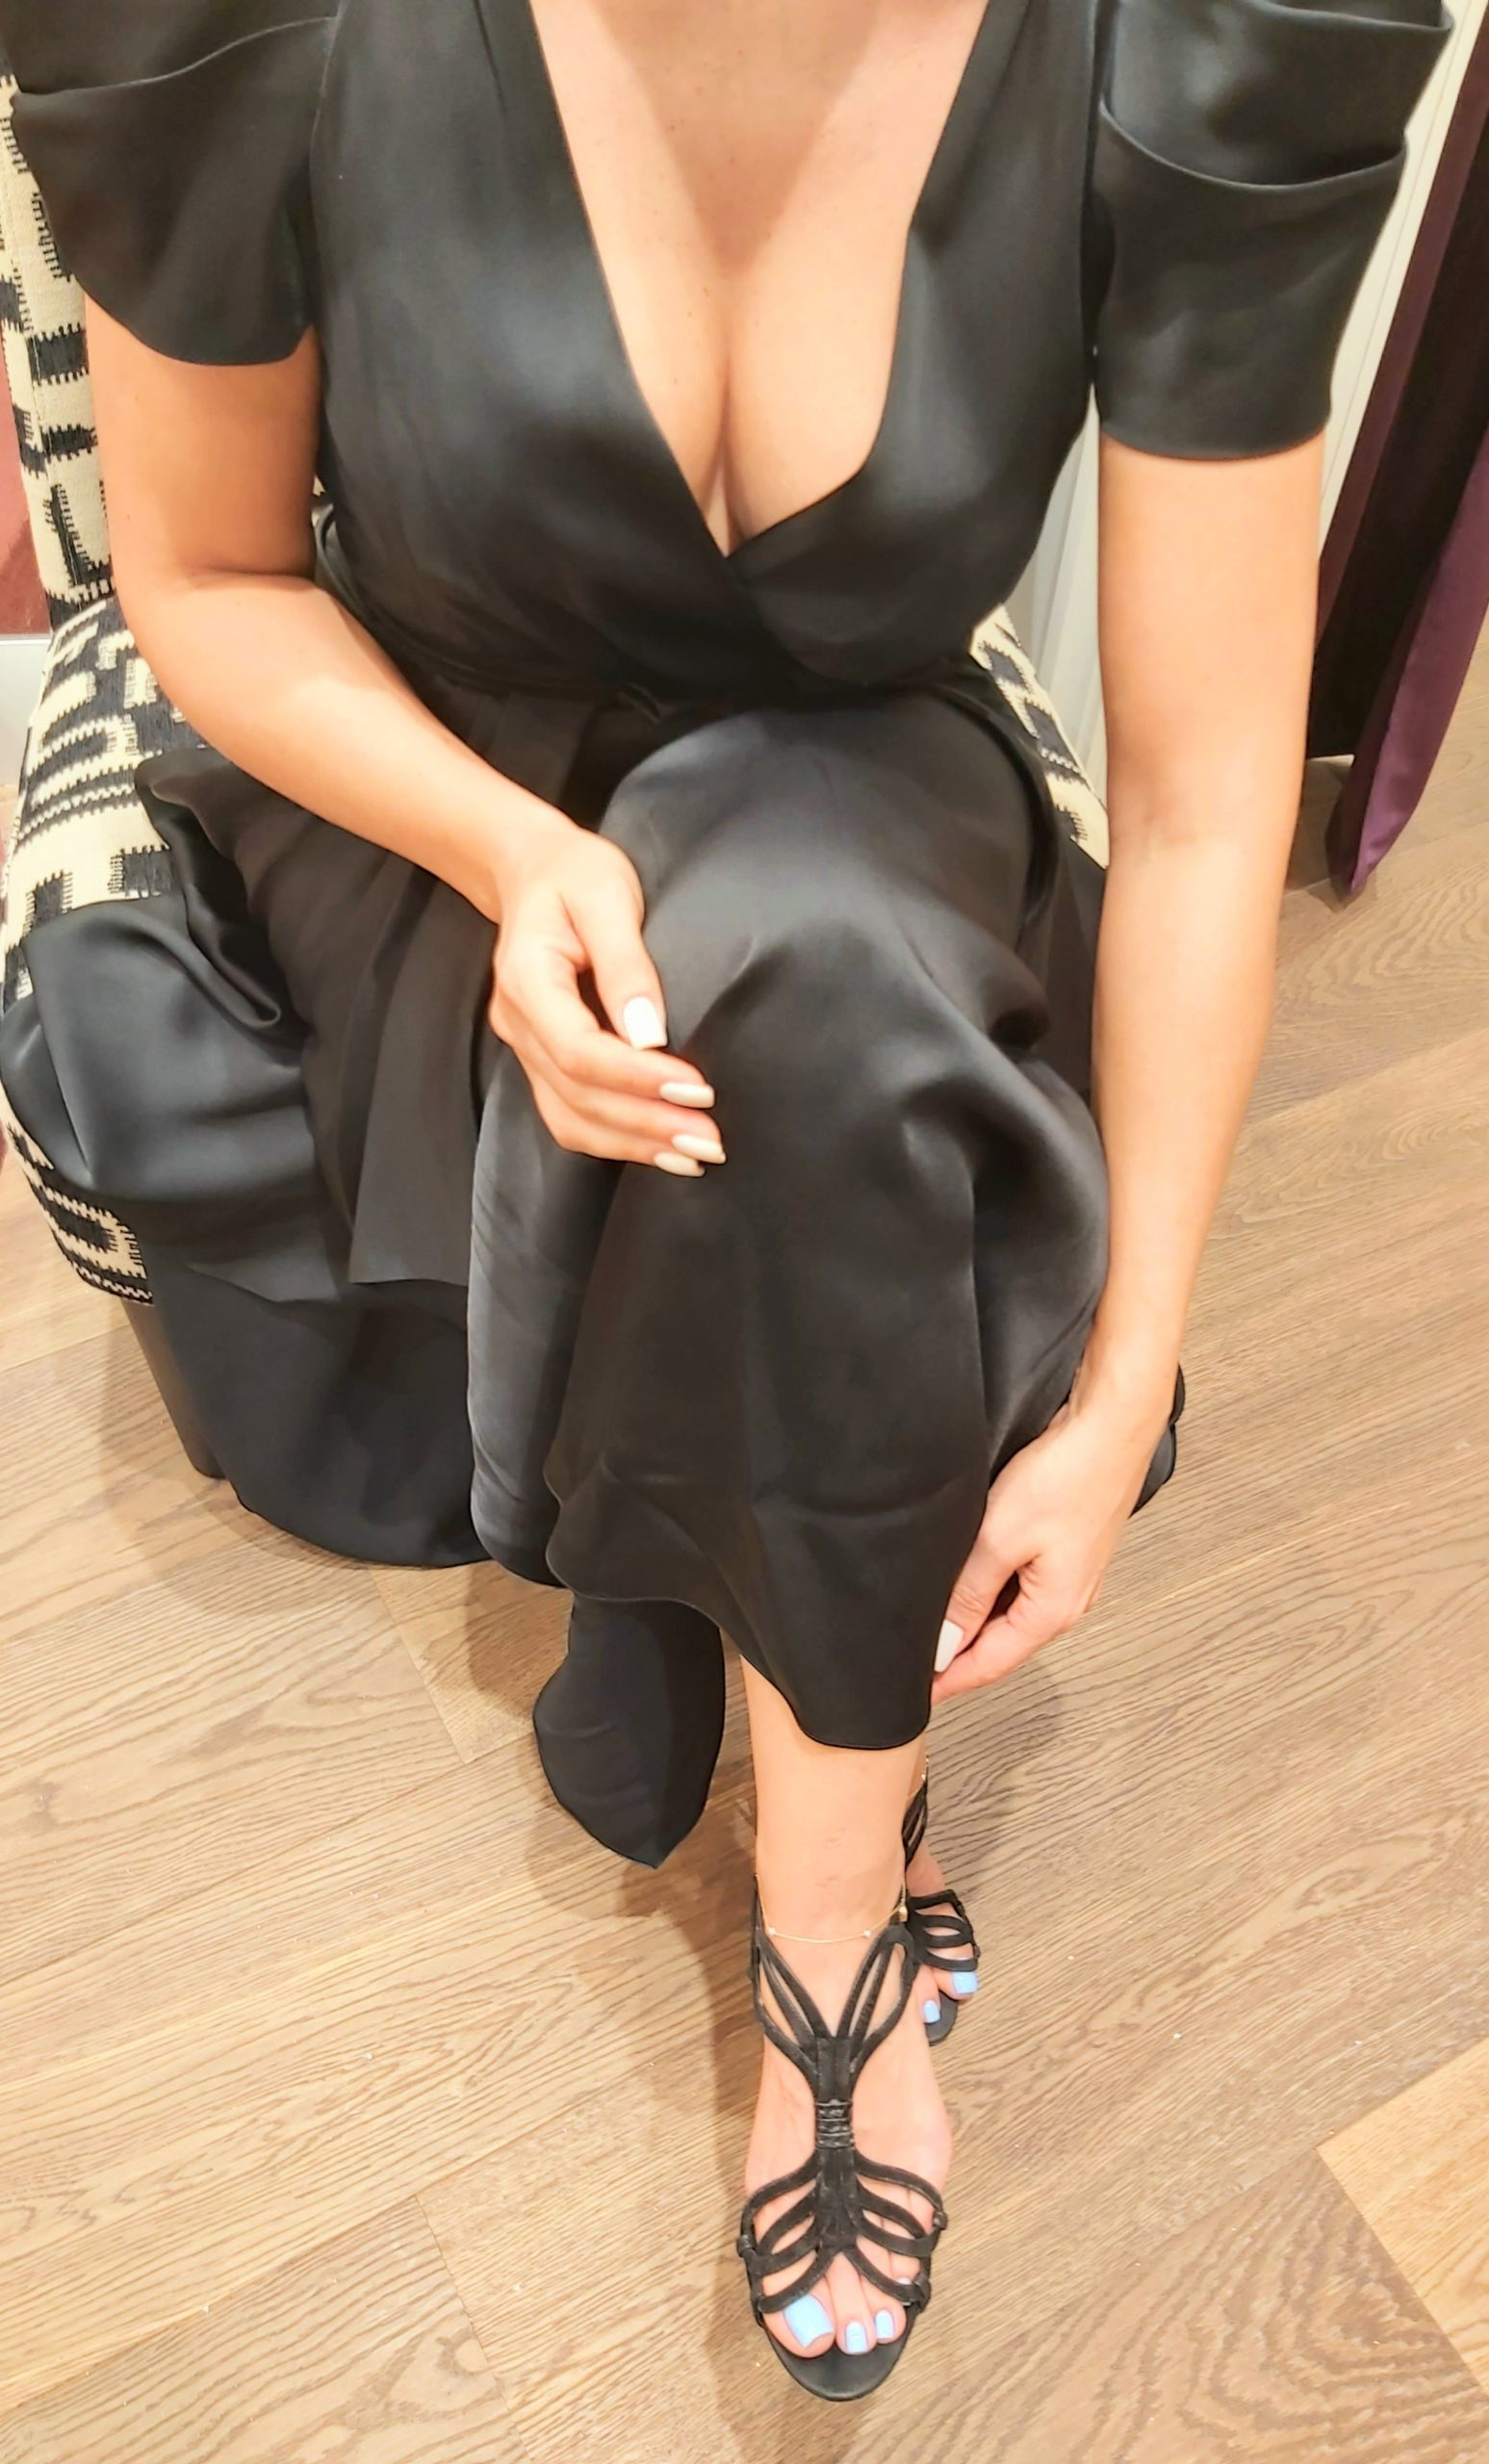 Dominatrix Anita is sitting on a fauteuil with black and white upholstery wearing a black satin dress with black open sandals and blue polished toe nails are showing.